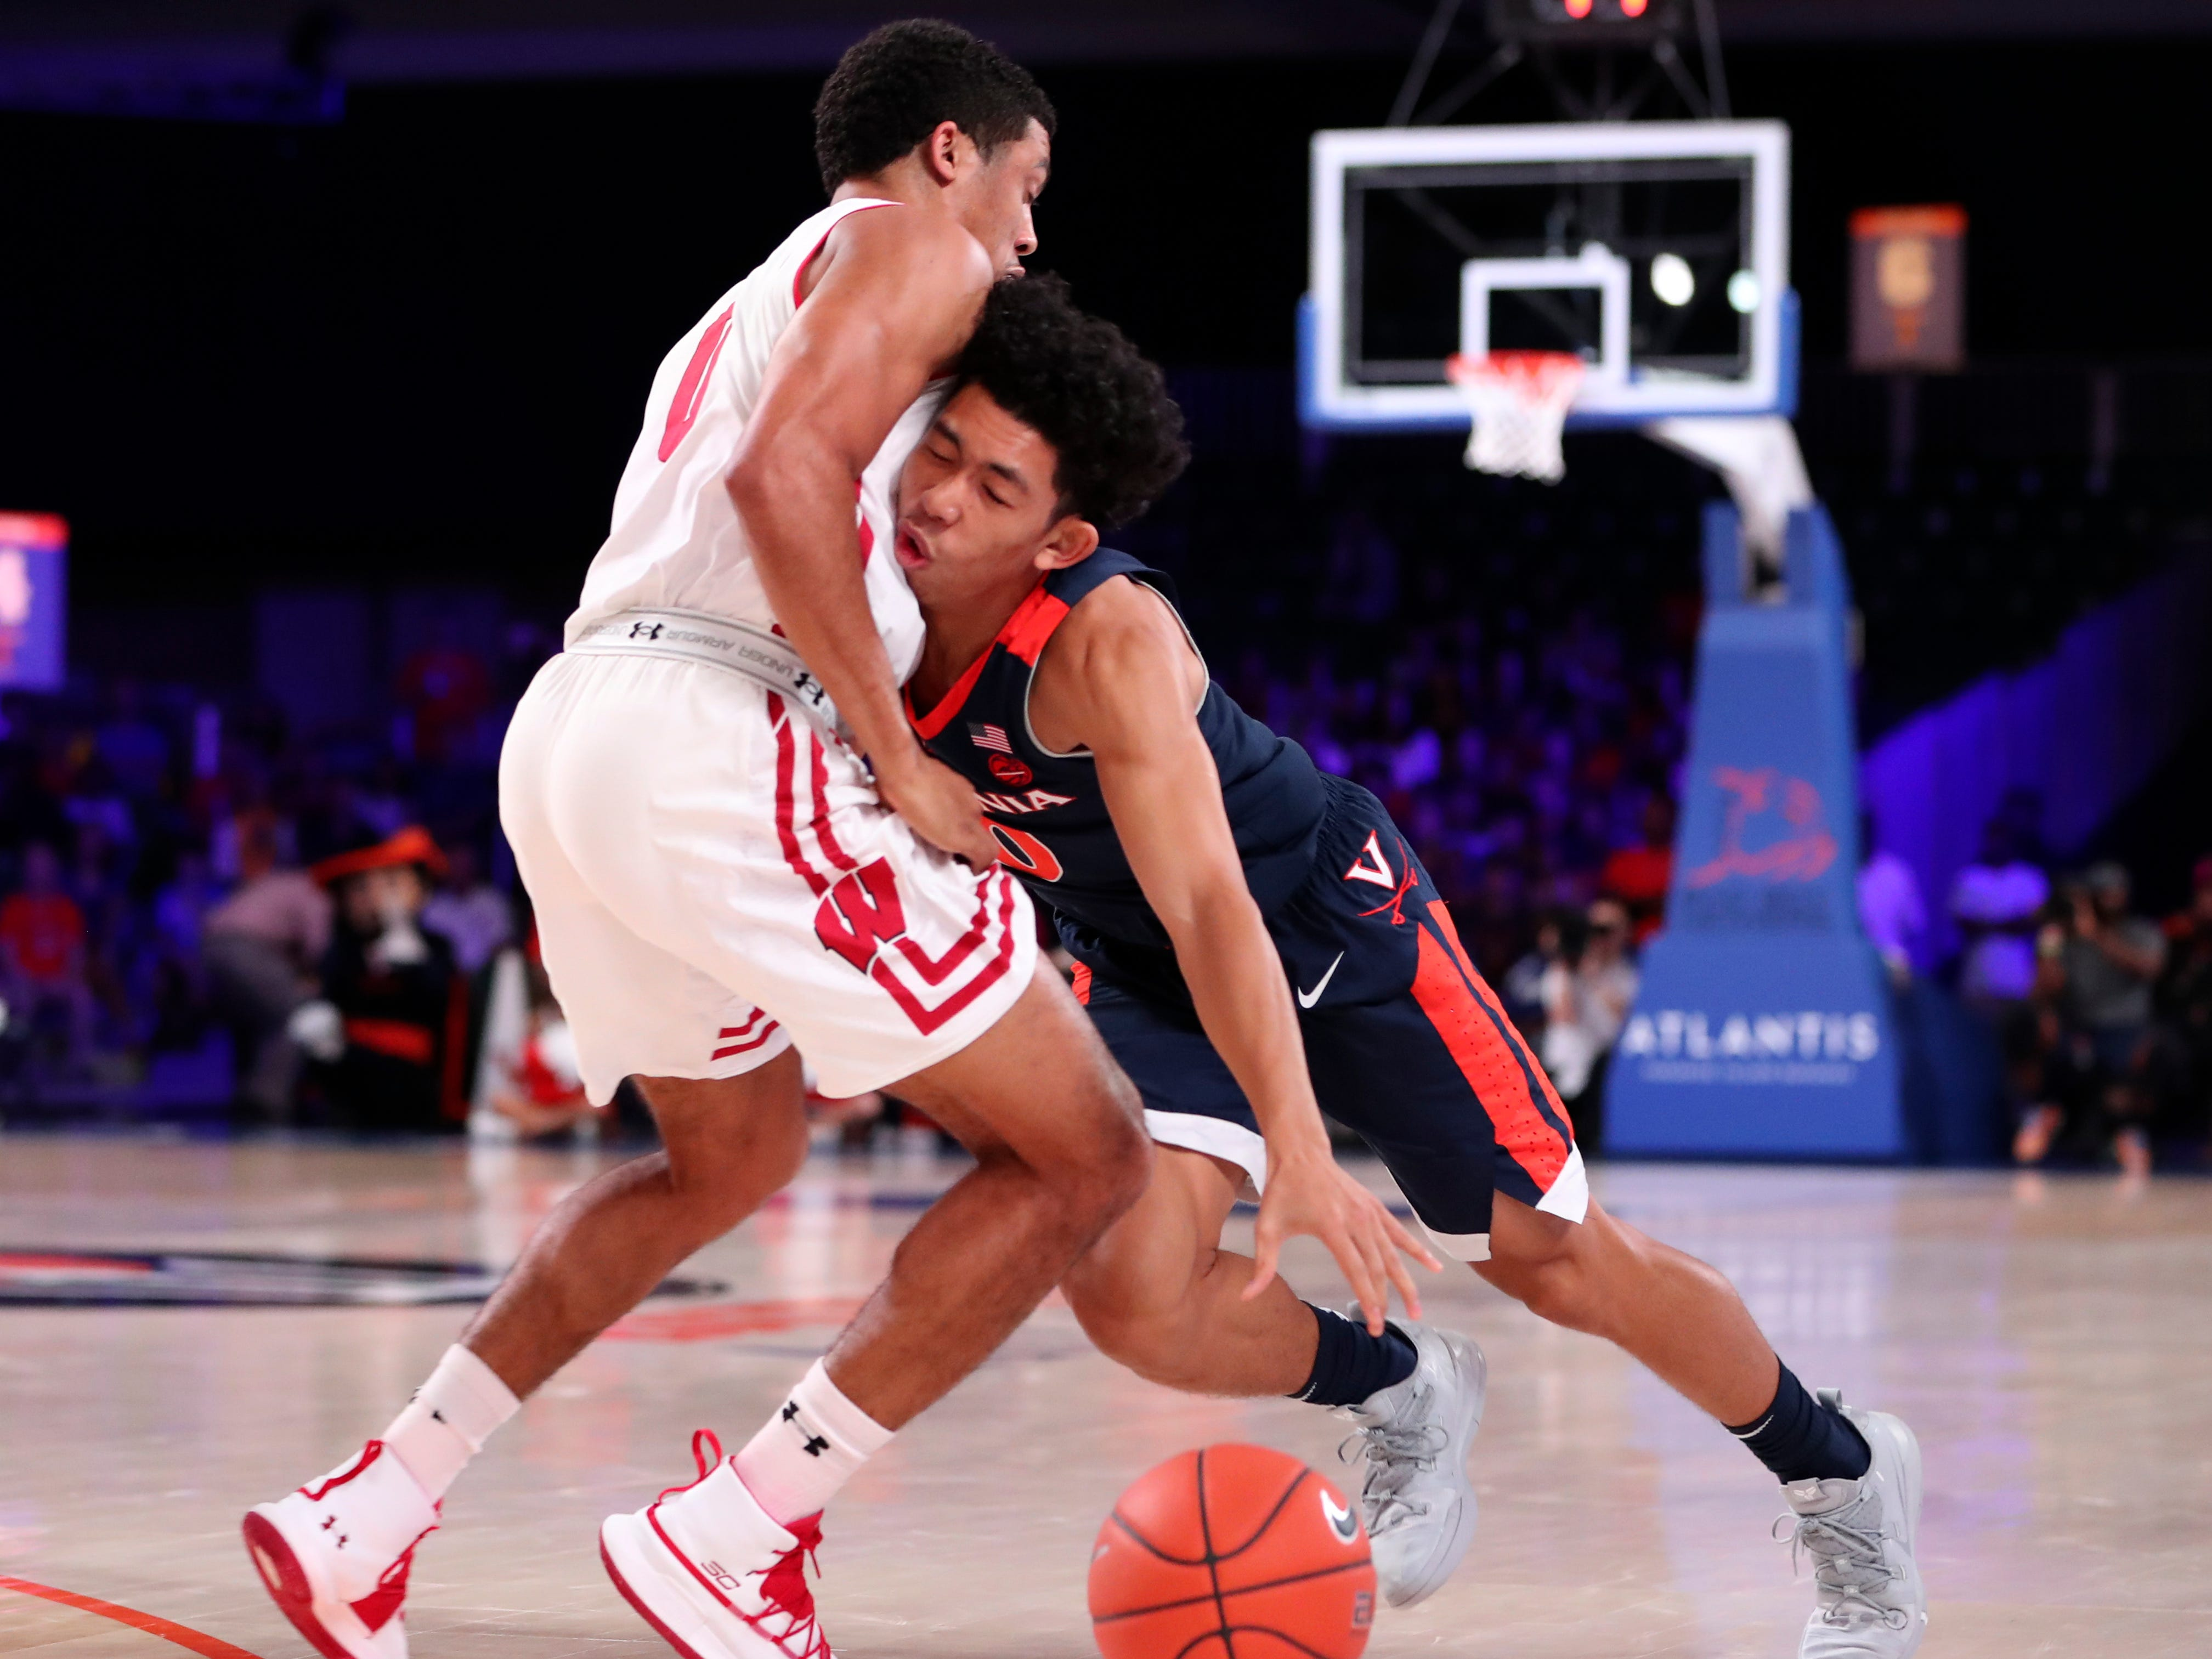 Virginia Cavaliers guard Kihei Clark runs into Badgers guard D'Mitrik Trice.